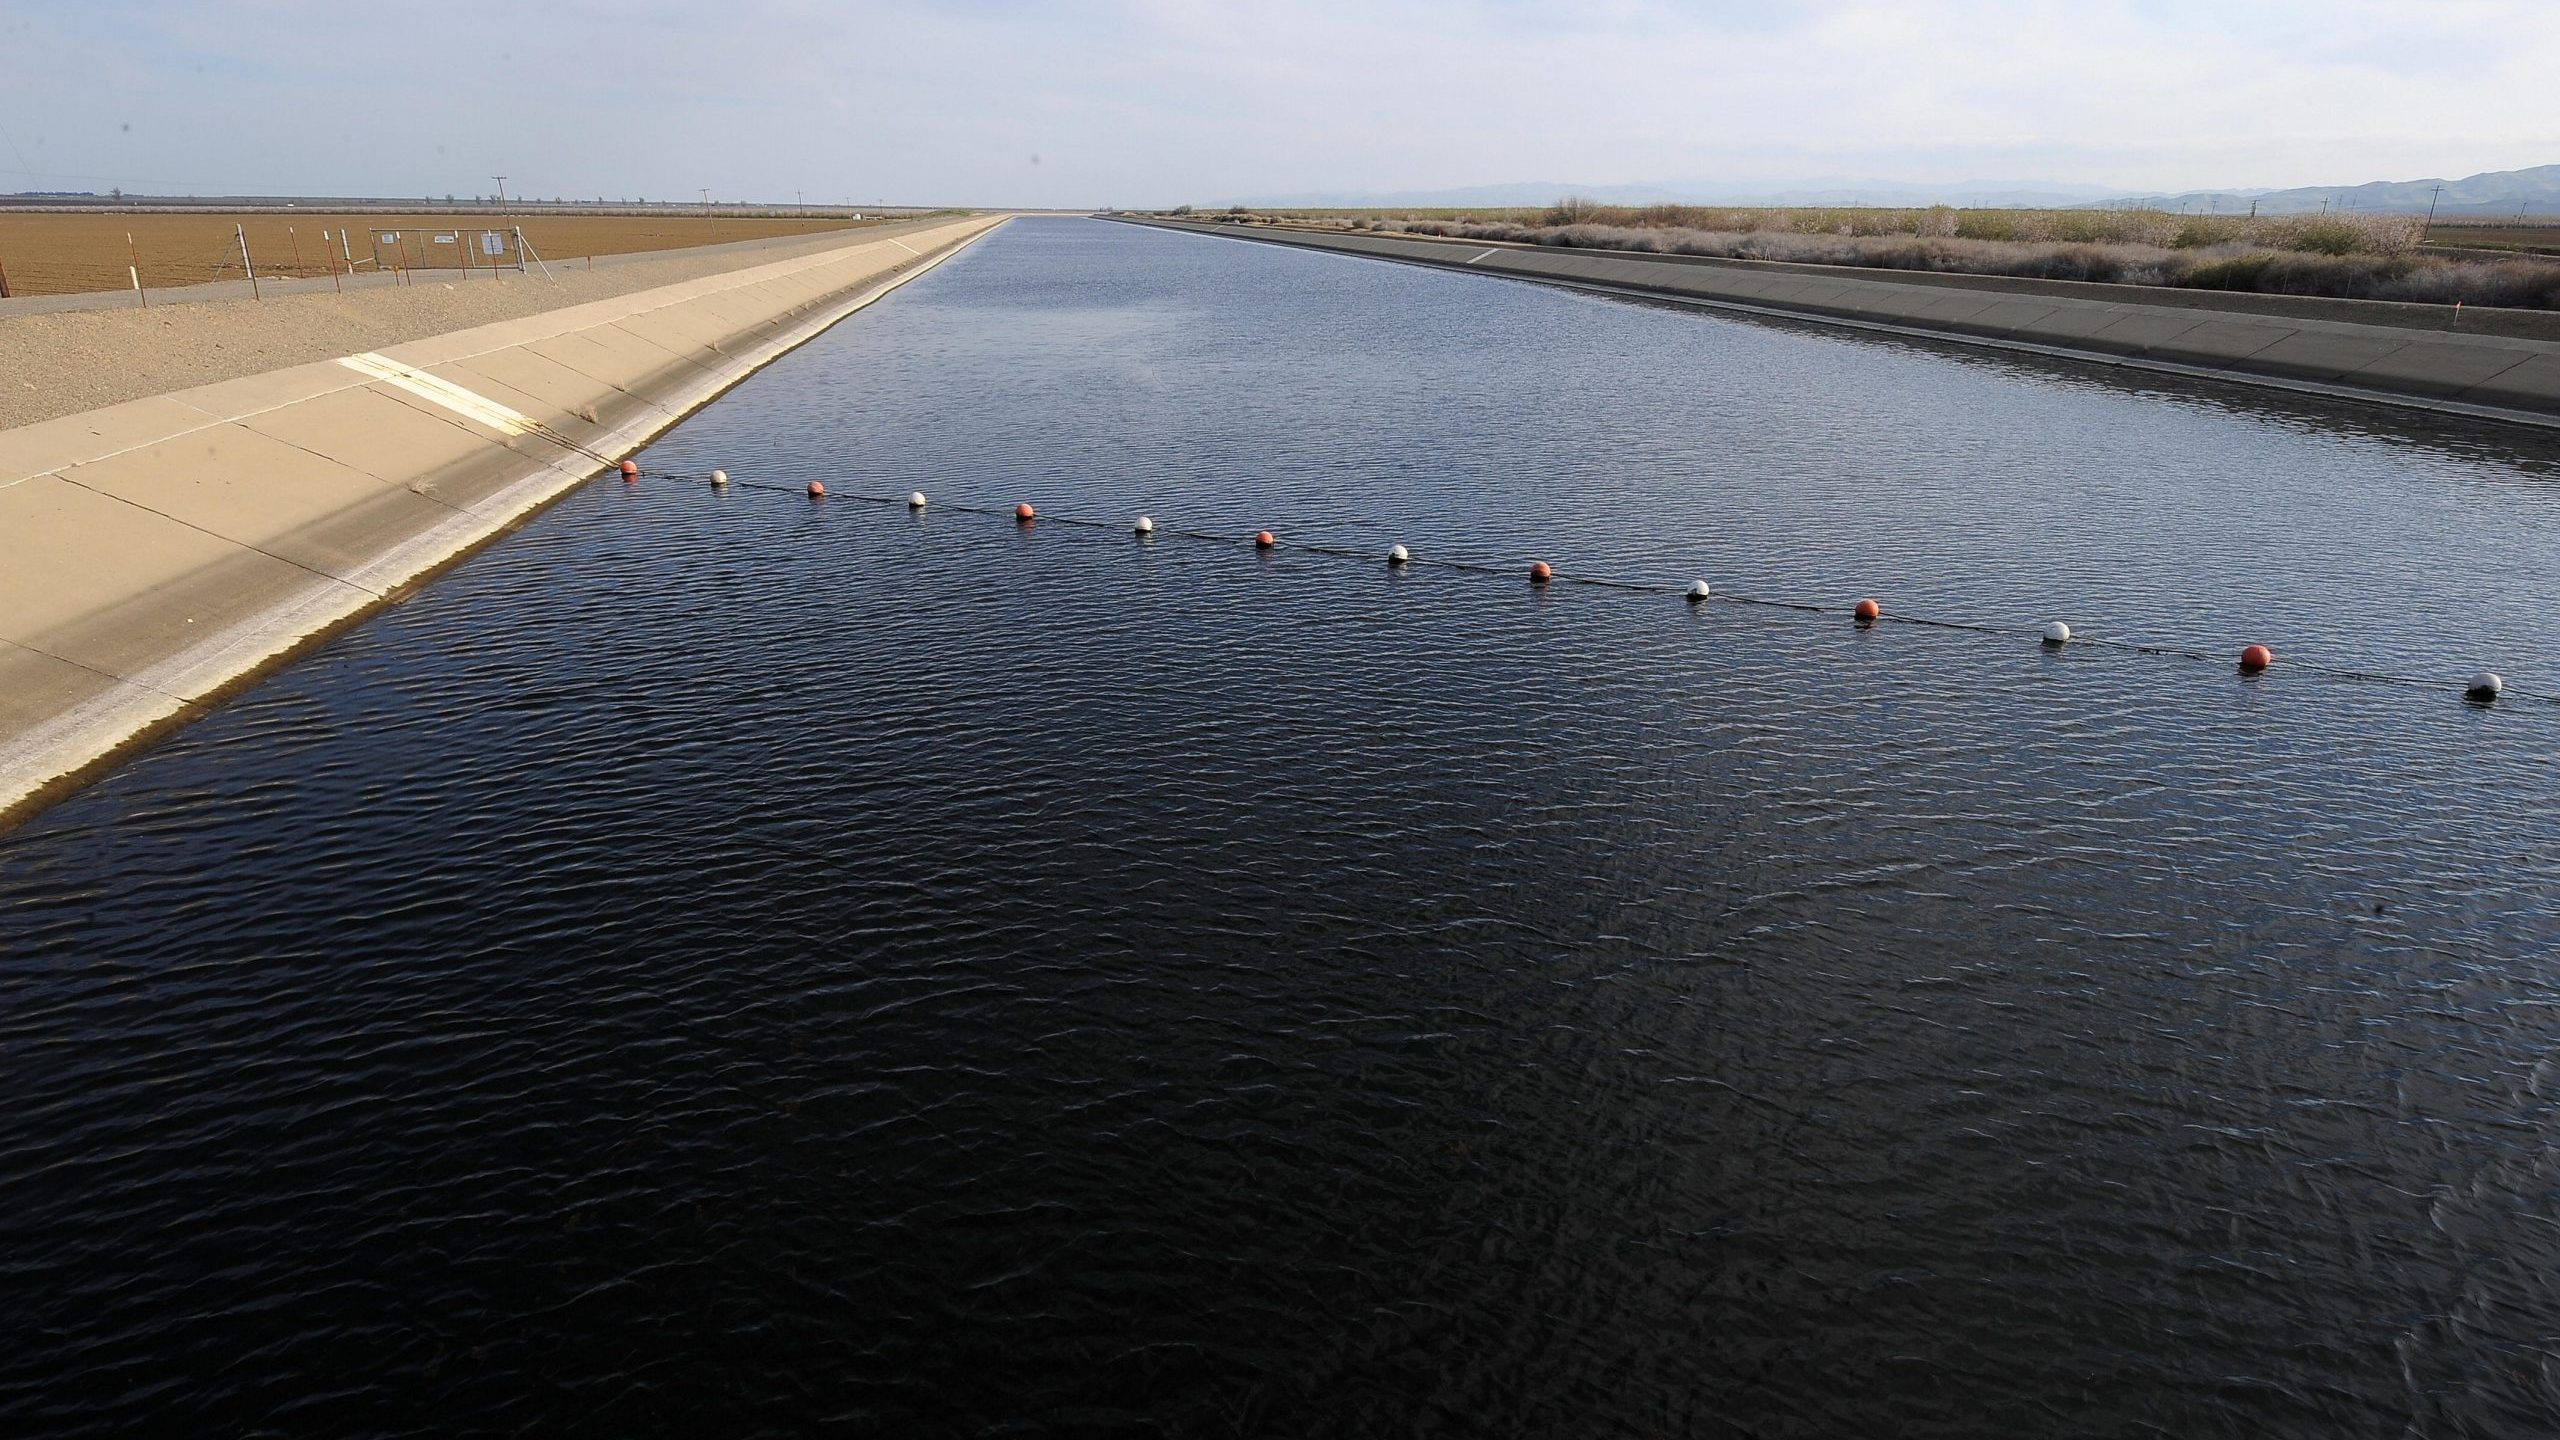 The California Aqueduct at Mendota carries water from the San Joaquin-Sacramento River Delta in the north to farms and cities in the central and southern part of the state on March 11, 2009. (Robyn Beck/AFP via Getty Images)